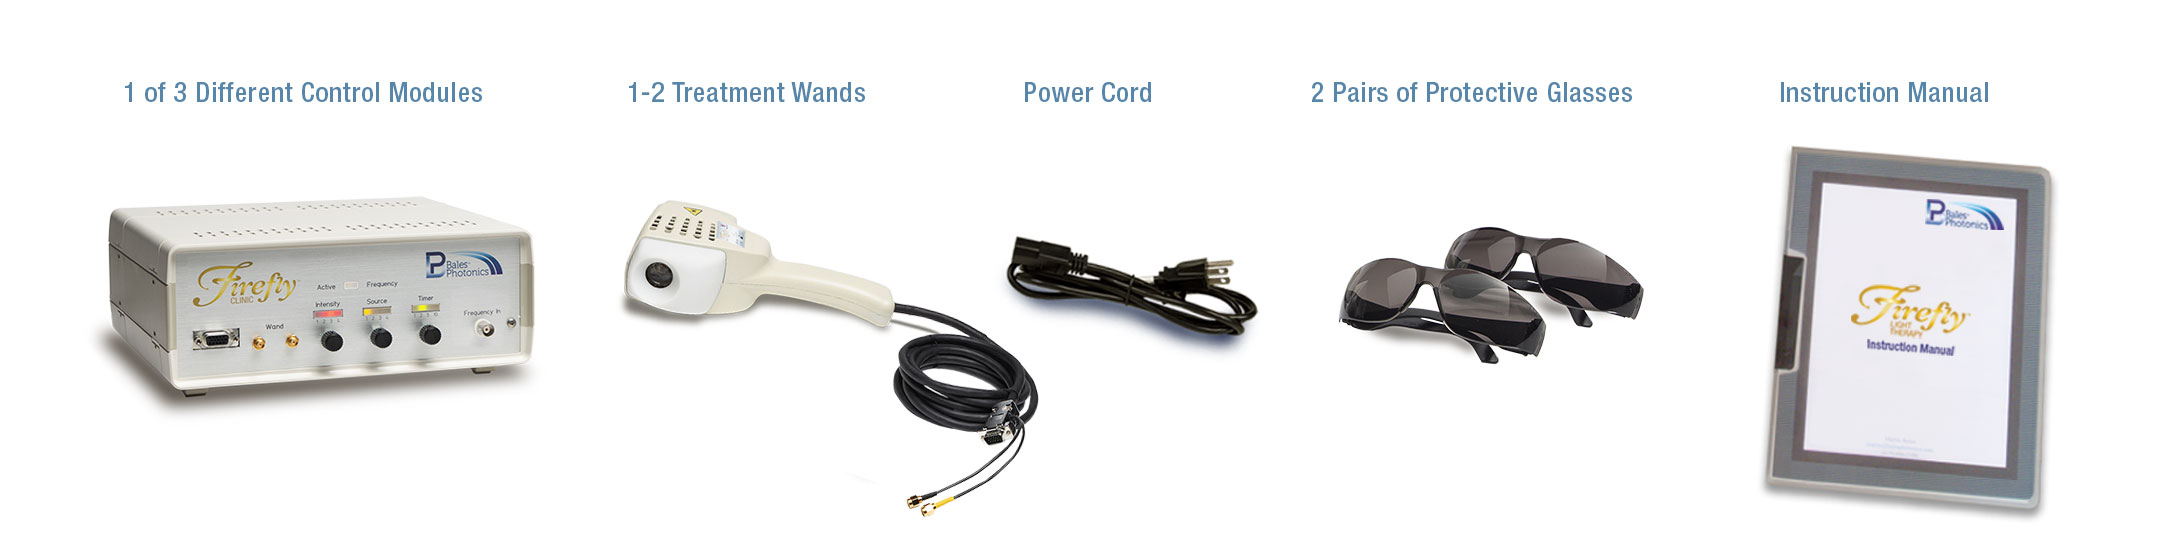 Firefly Light Therapy packages include one of 3 control units, a light wand, poer cord, sunglasses and a user manual